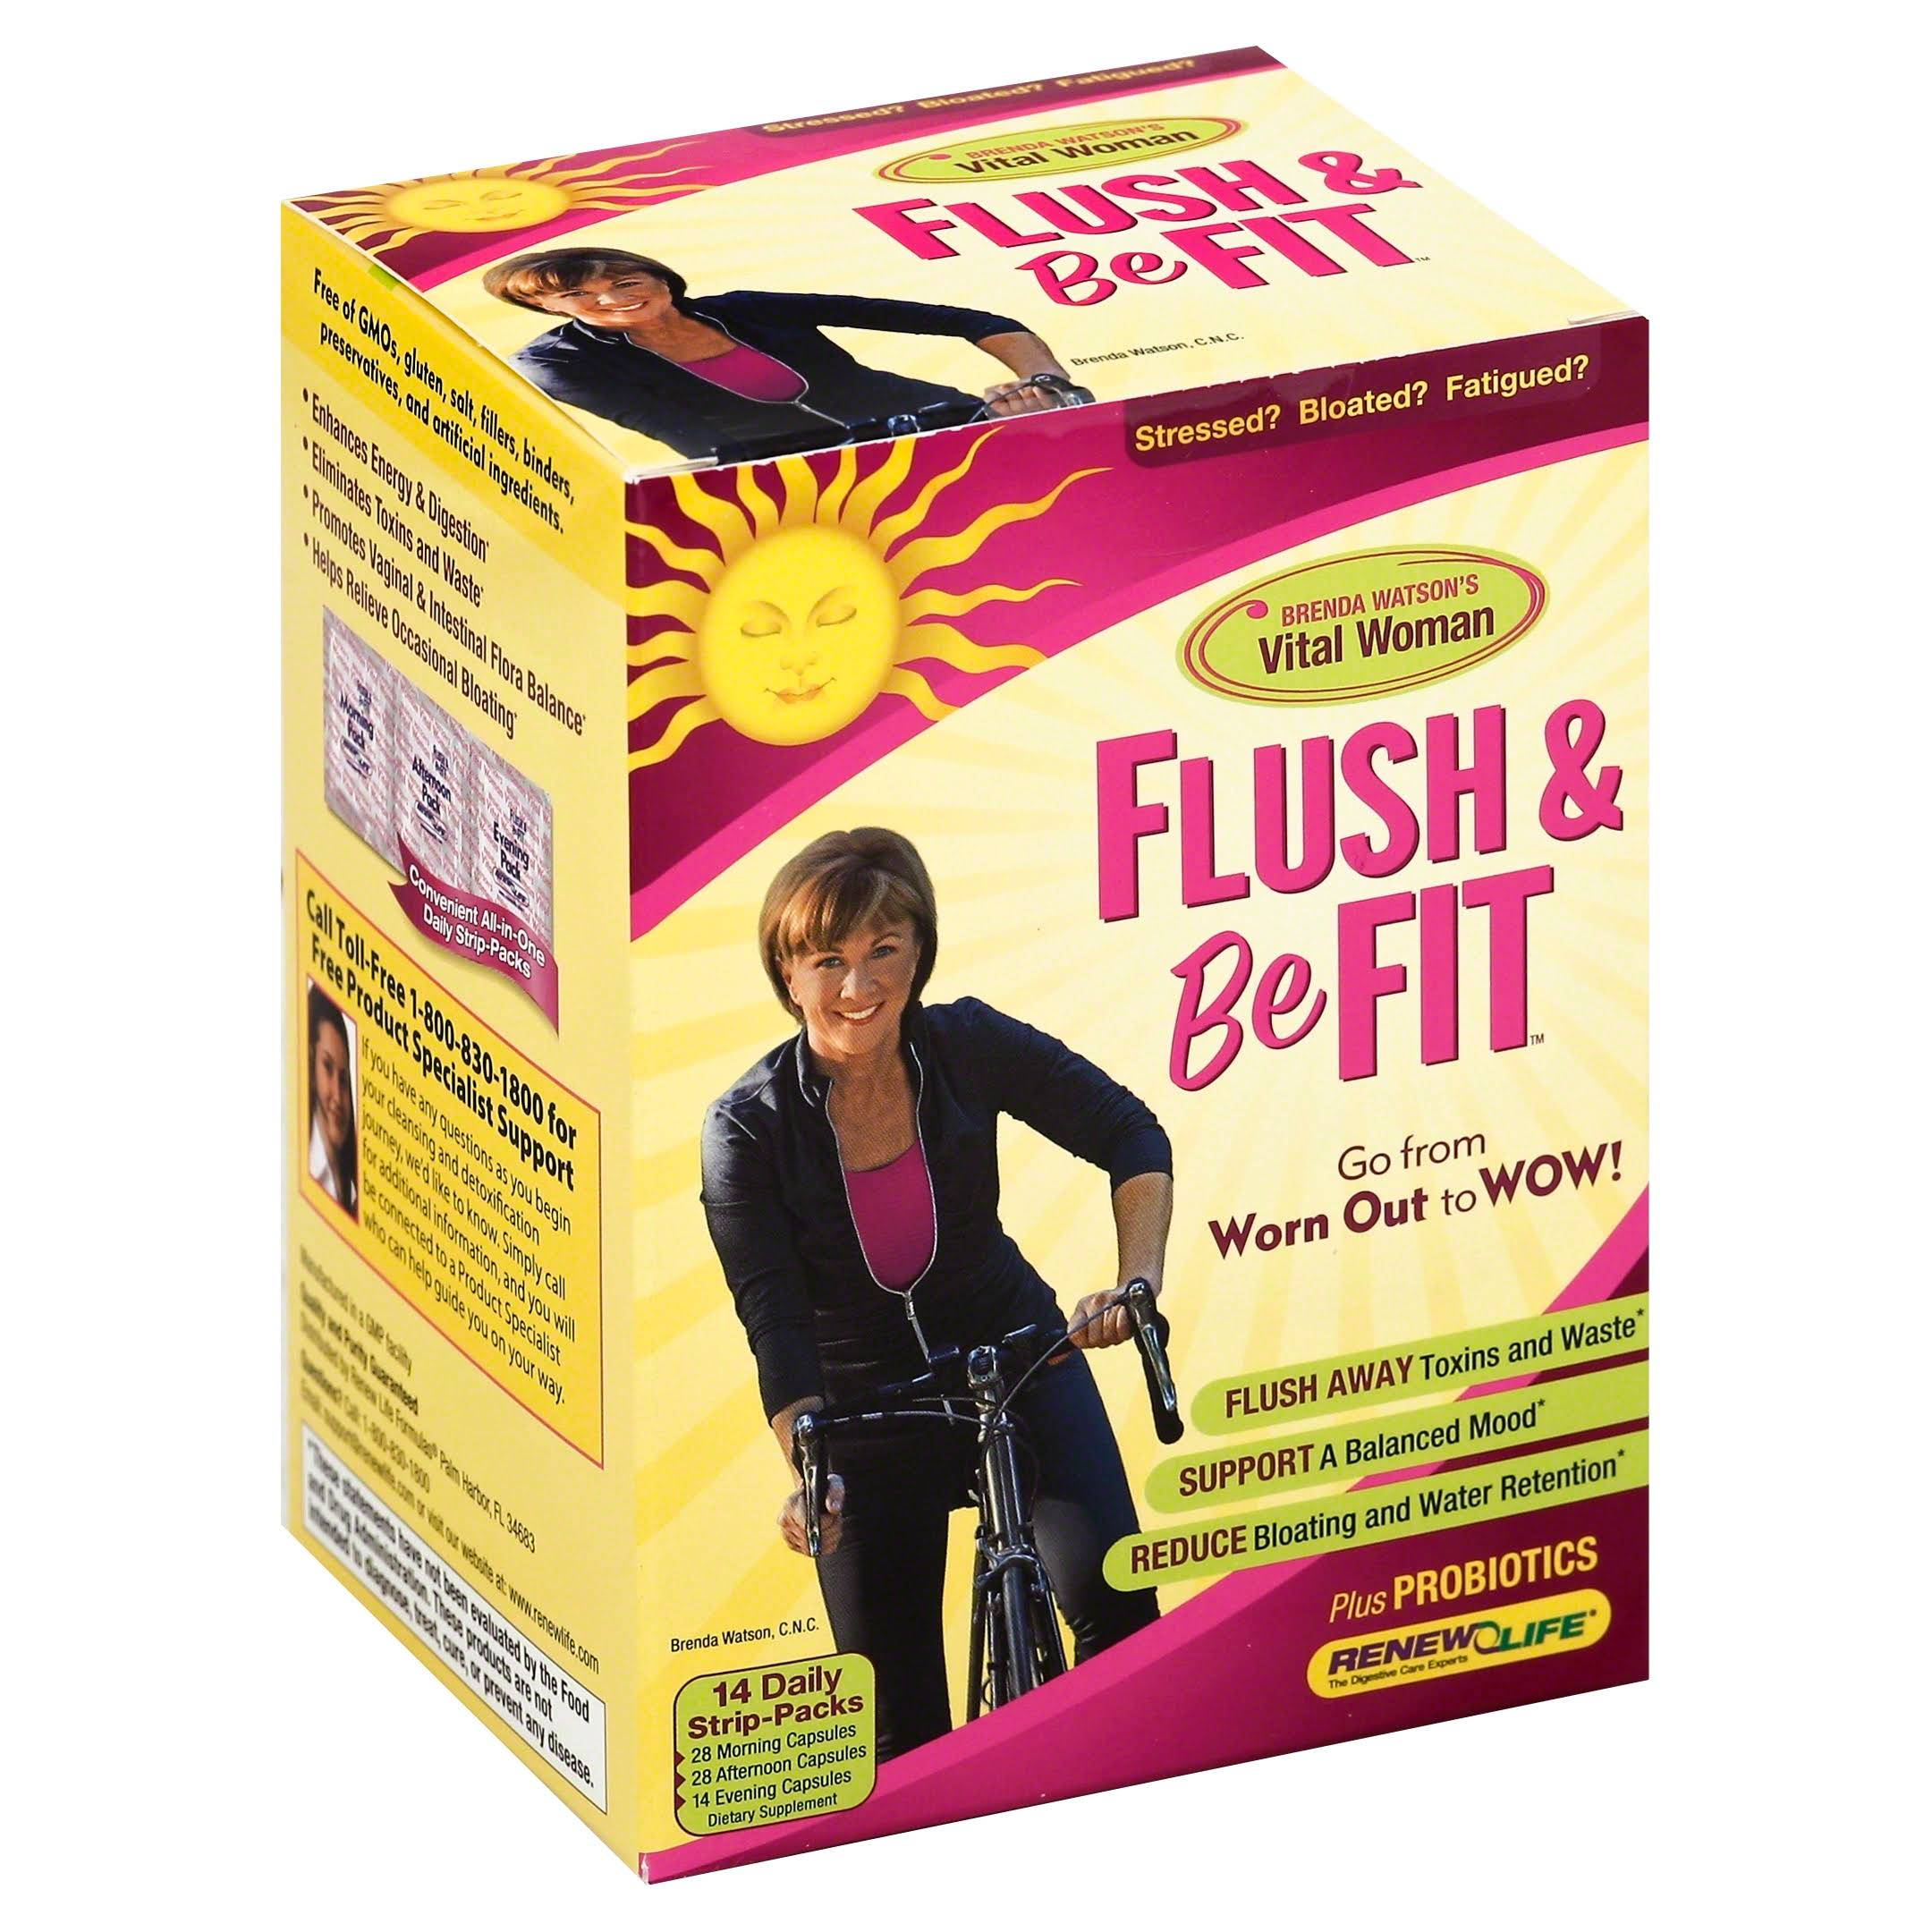 Renew Life Women's Care Flush and Be Fit 14-Day Program Daily Strip Packs - 14ct